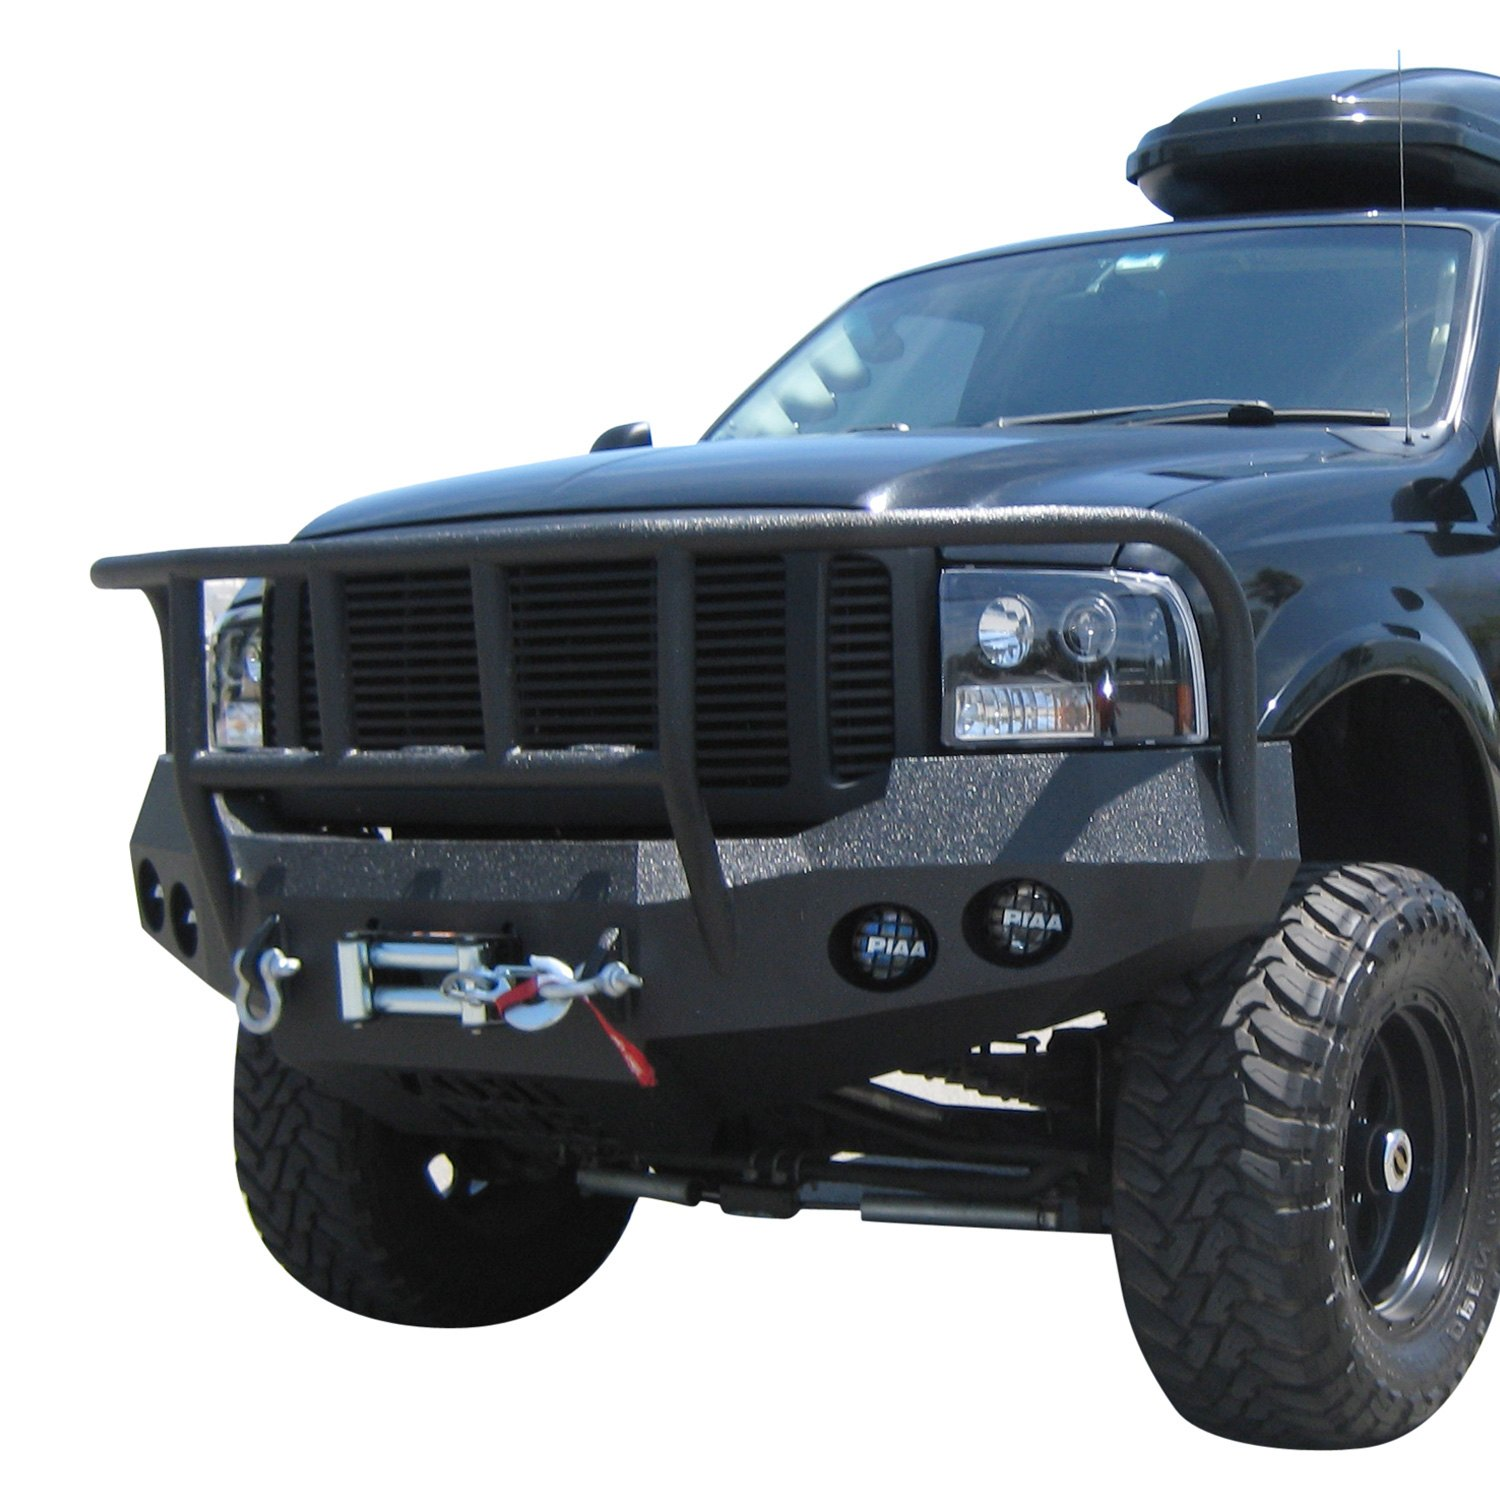 Iron Bull Bumpers : Iron bull bumpers ford f super duty base front